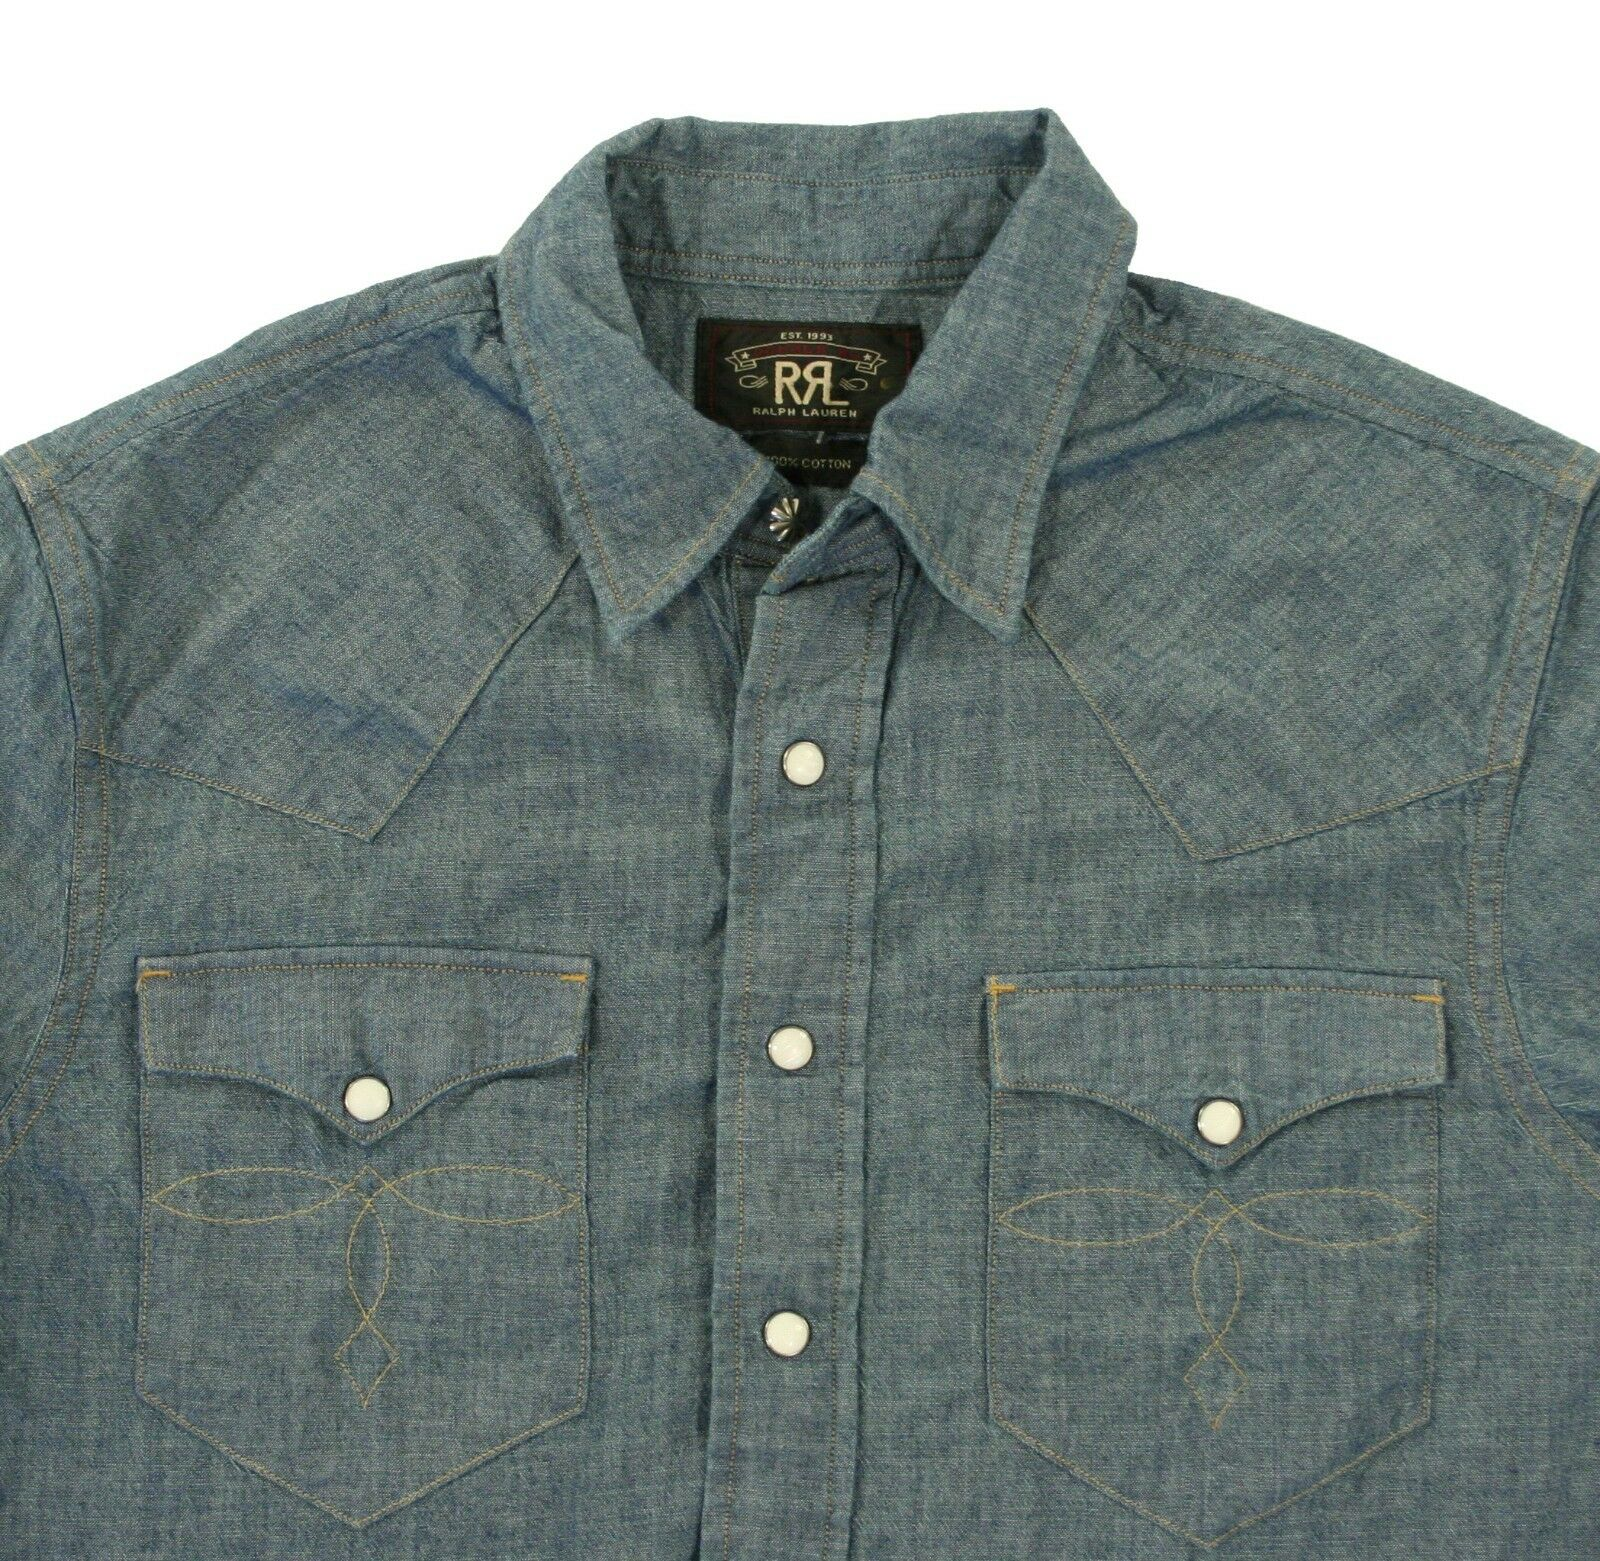 Donna Ralph Ralph Ralph Lauren Rrl Vintage Western Camicia di Jeans Nuovo fa98ee